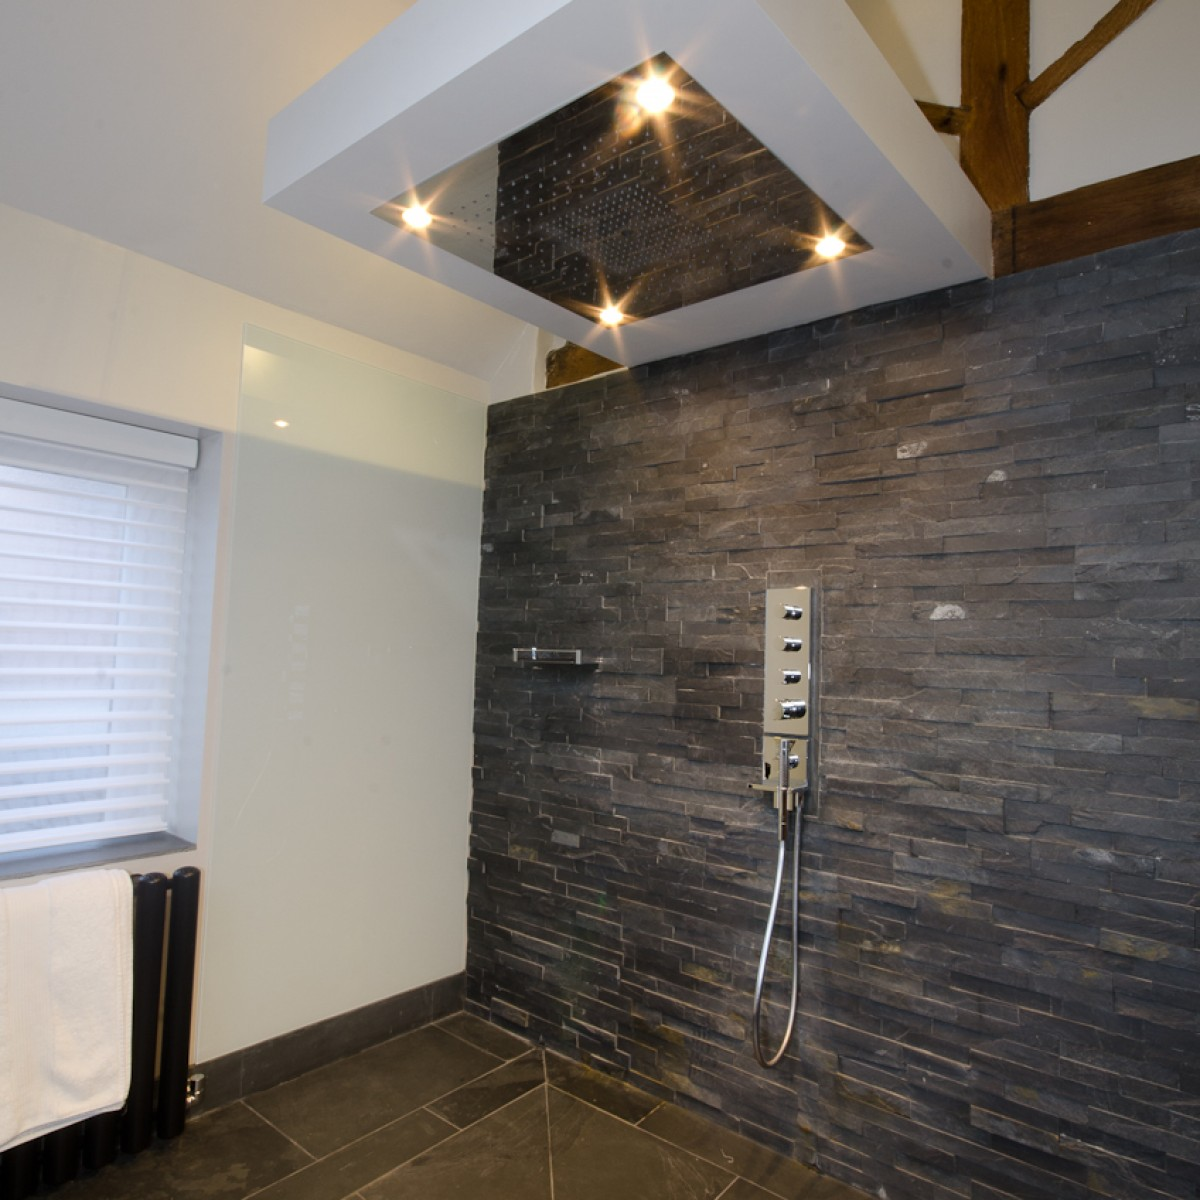 Contemporary interior design for bathroom shower unit with free hanging ceiling shower head.